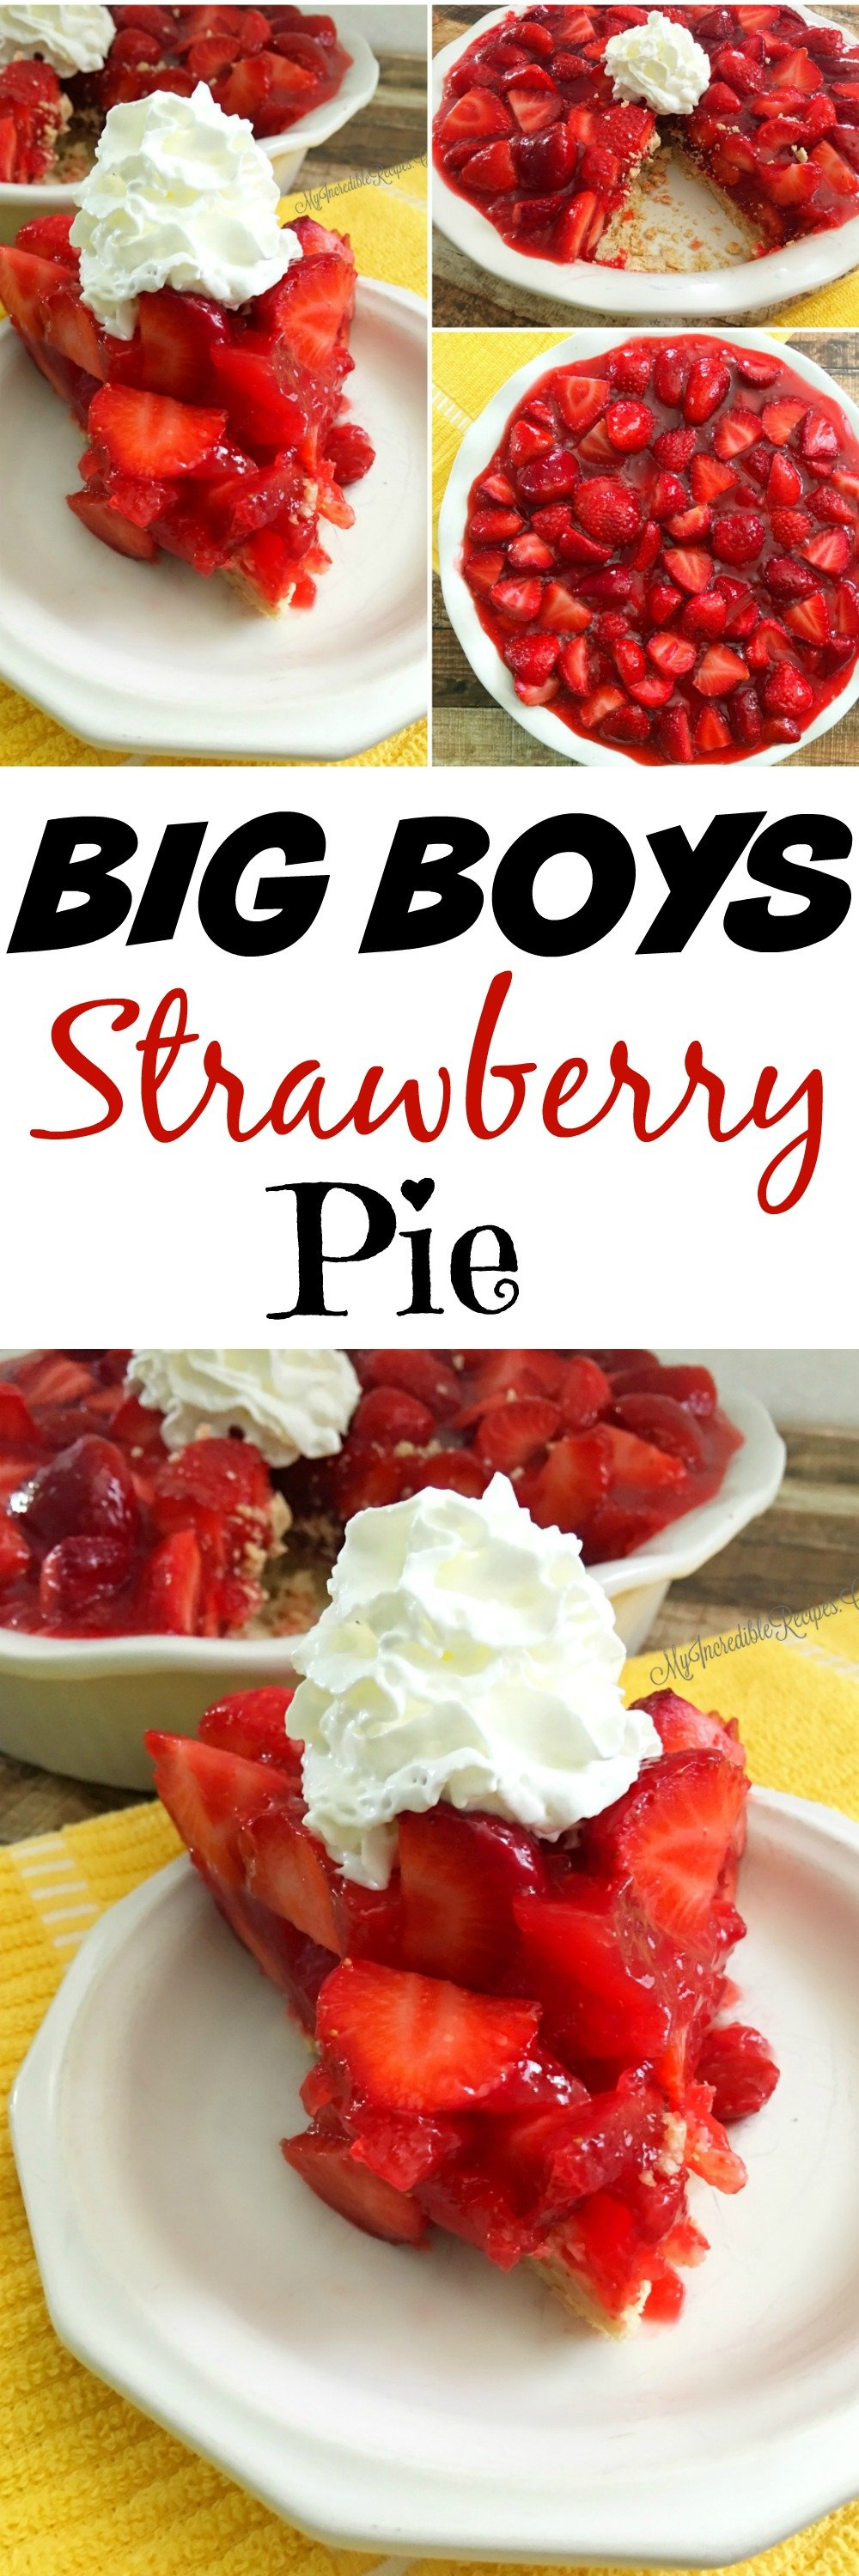 Best Ever Strawberry Pie